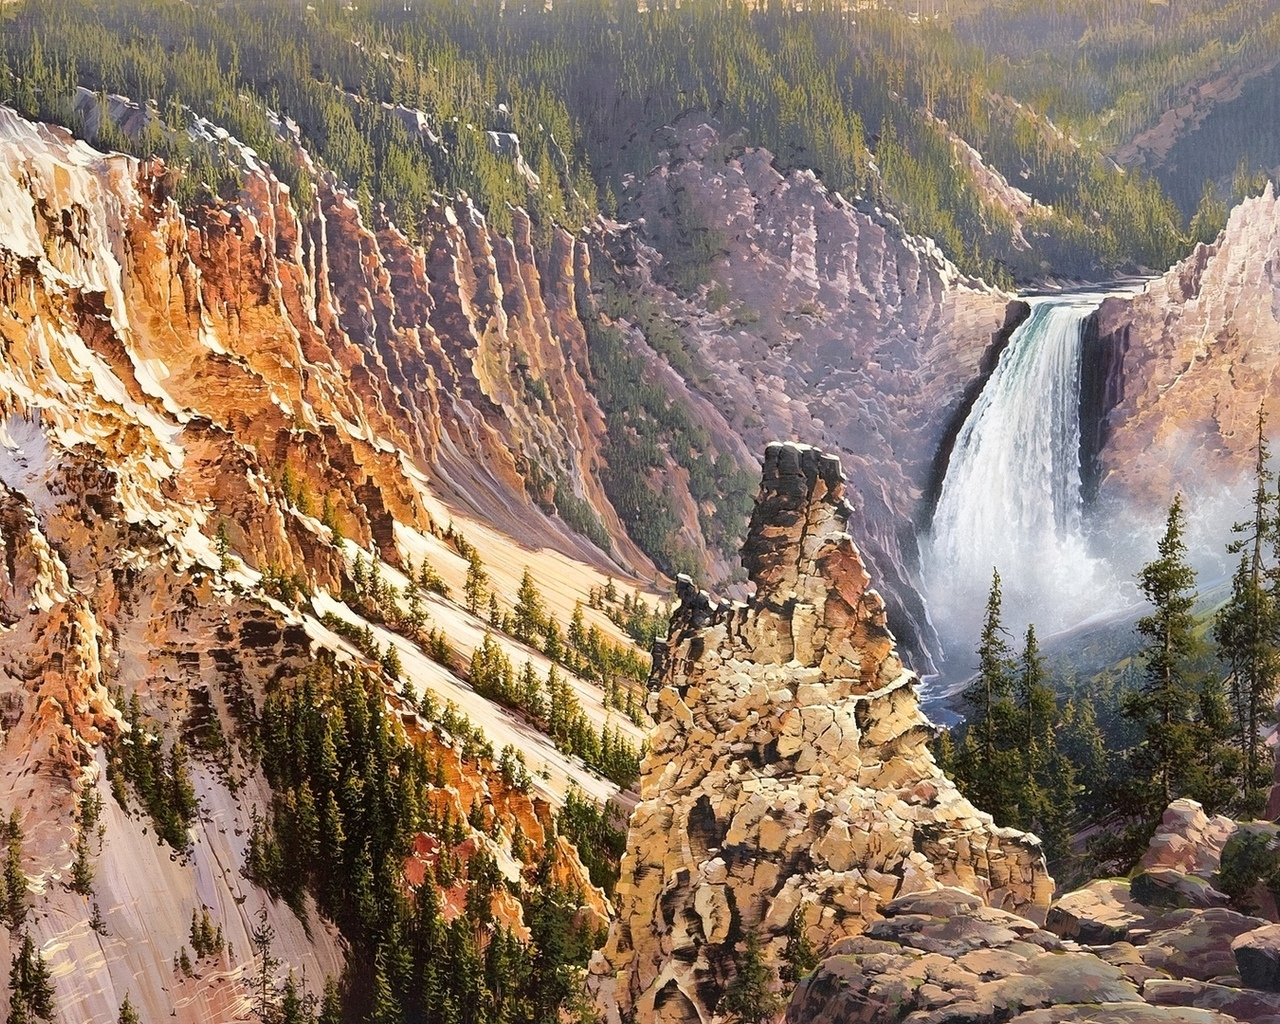 bruce cheever, power and grace lower falls of the yellowstone, природа, живопись